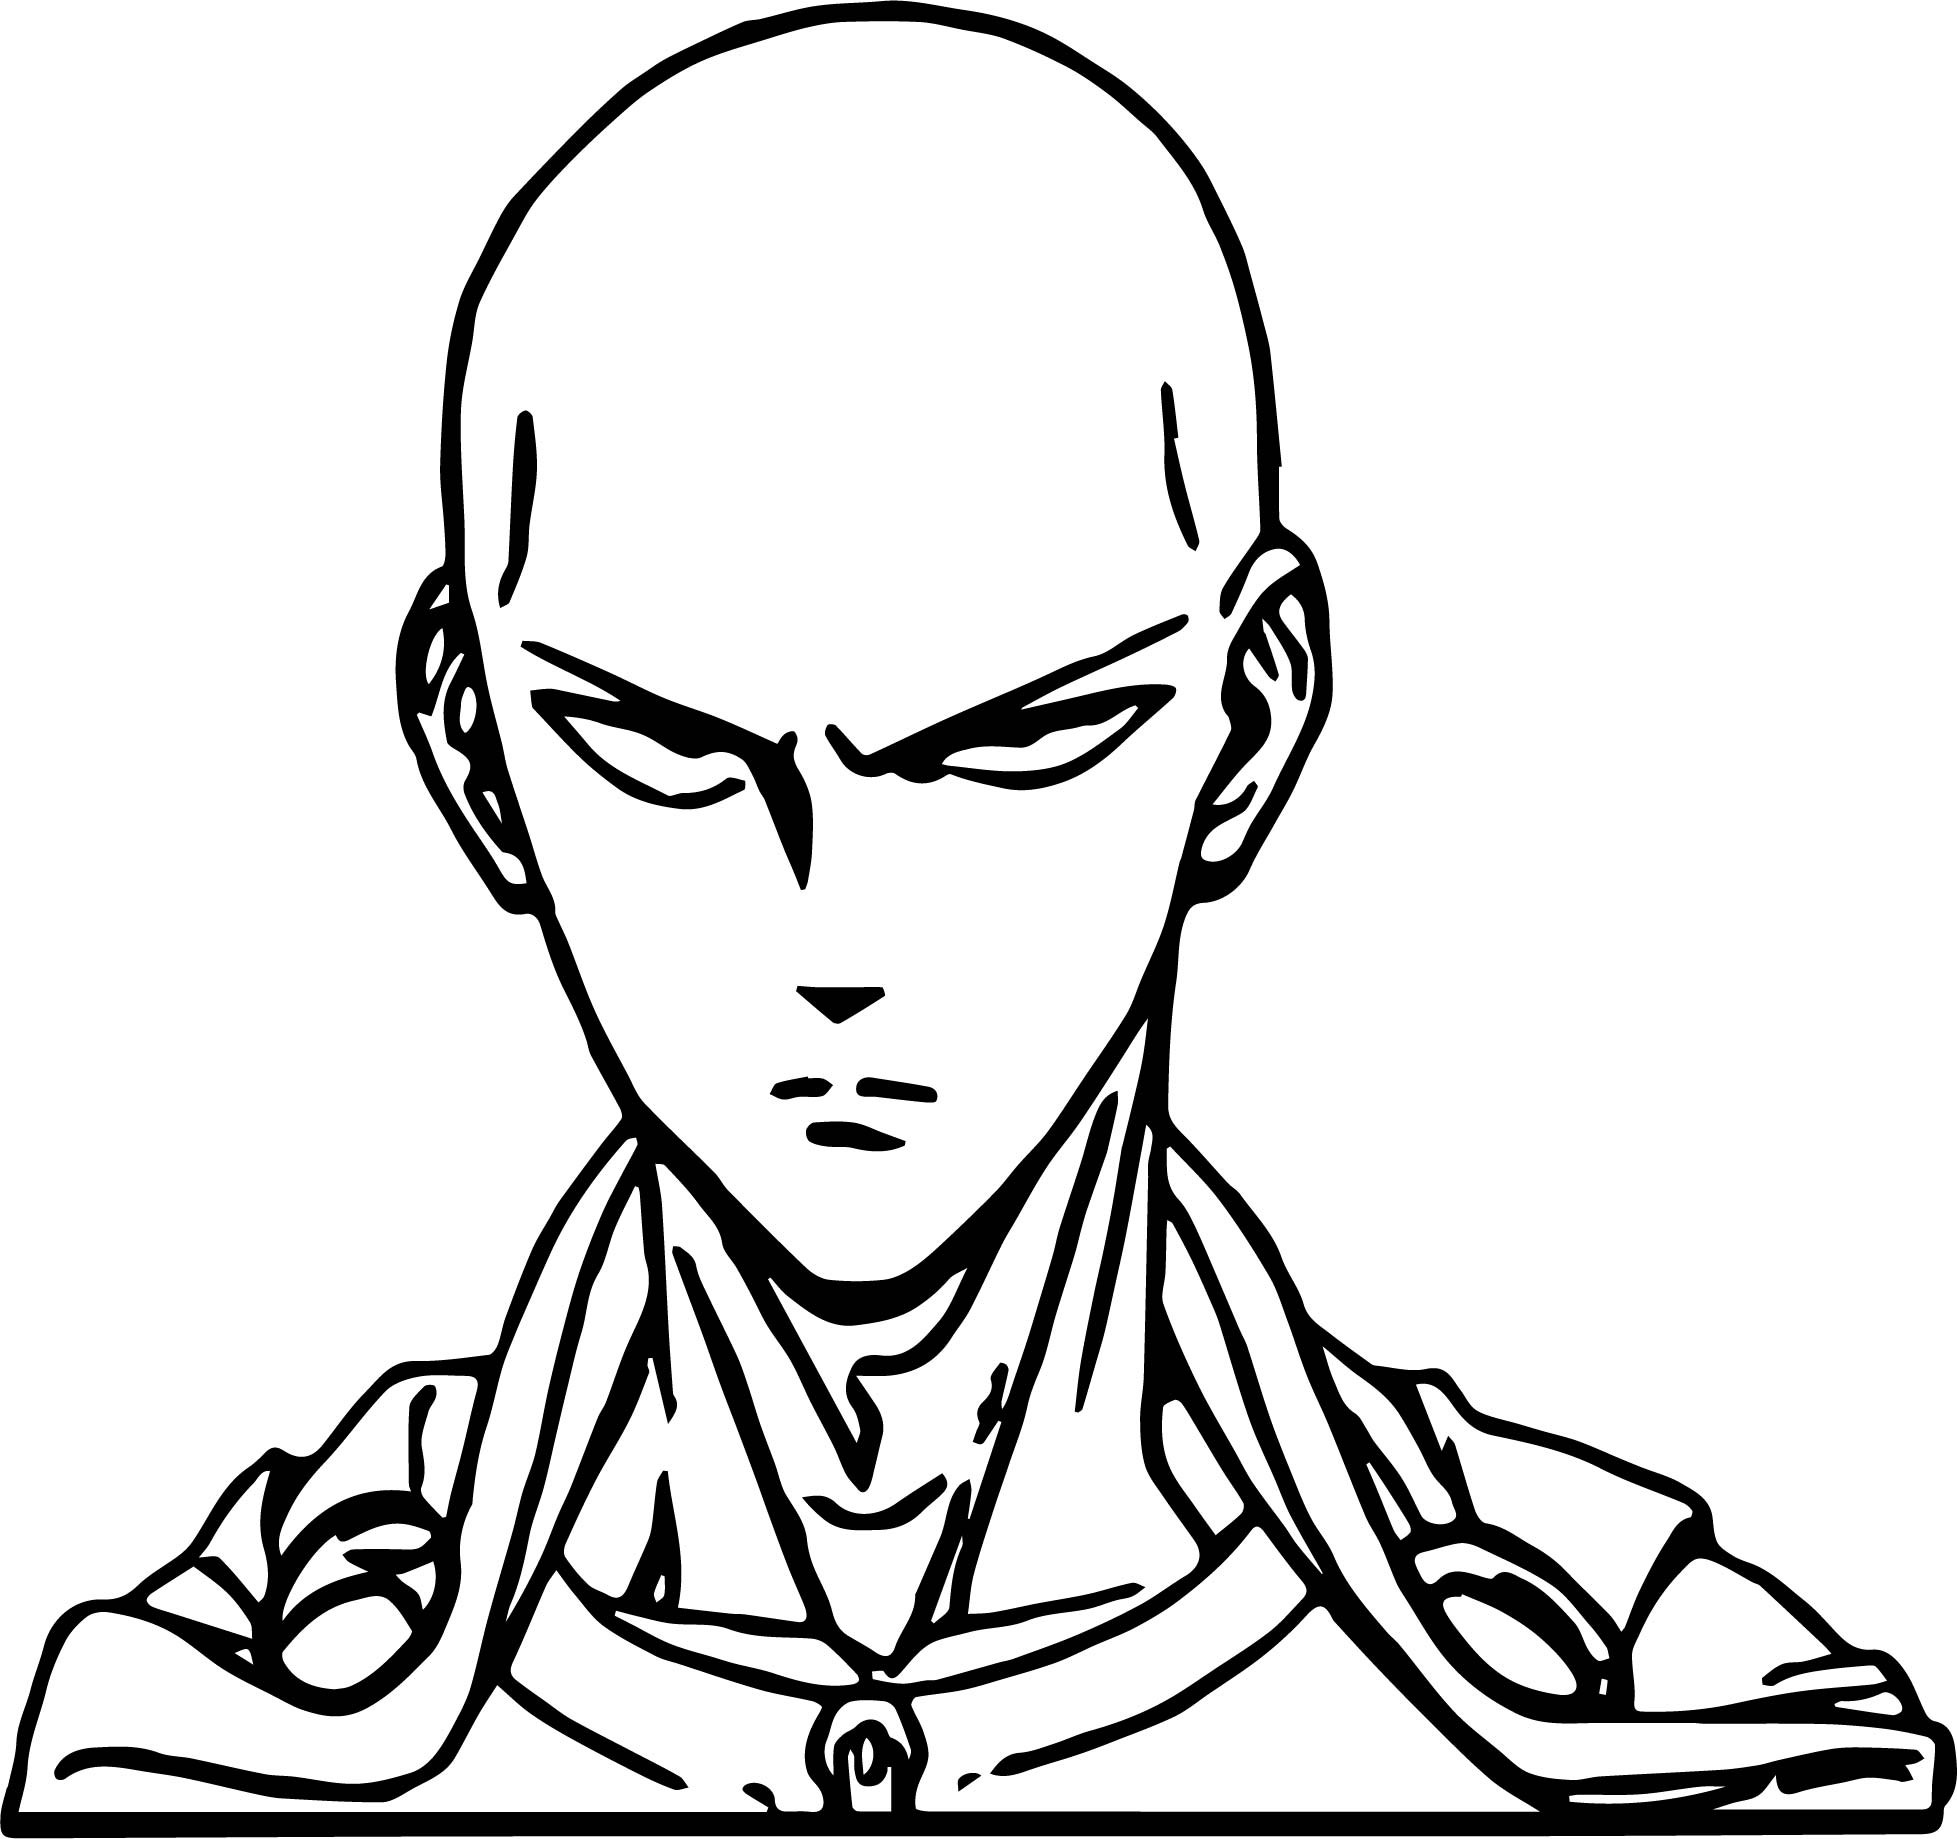 One Punch Man Coloring Pages  e Punch Man Anime Character Design Saitama Coloring Page